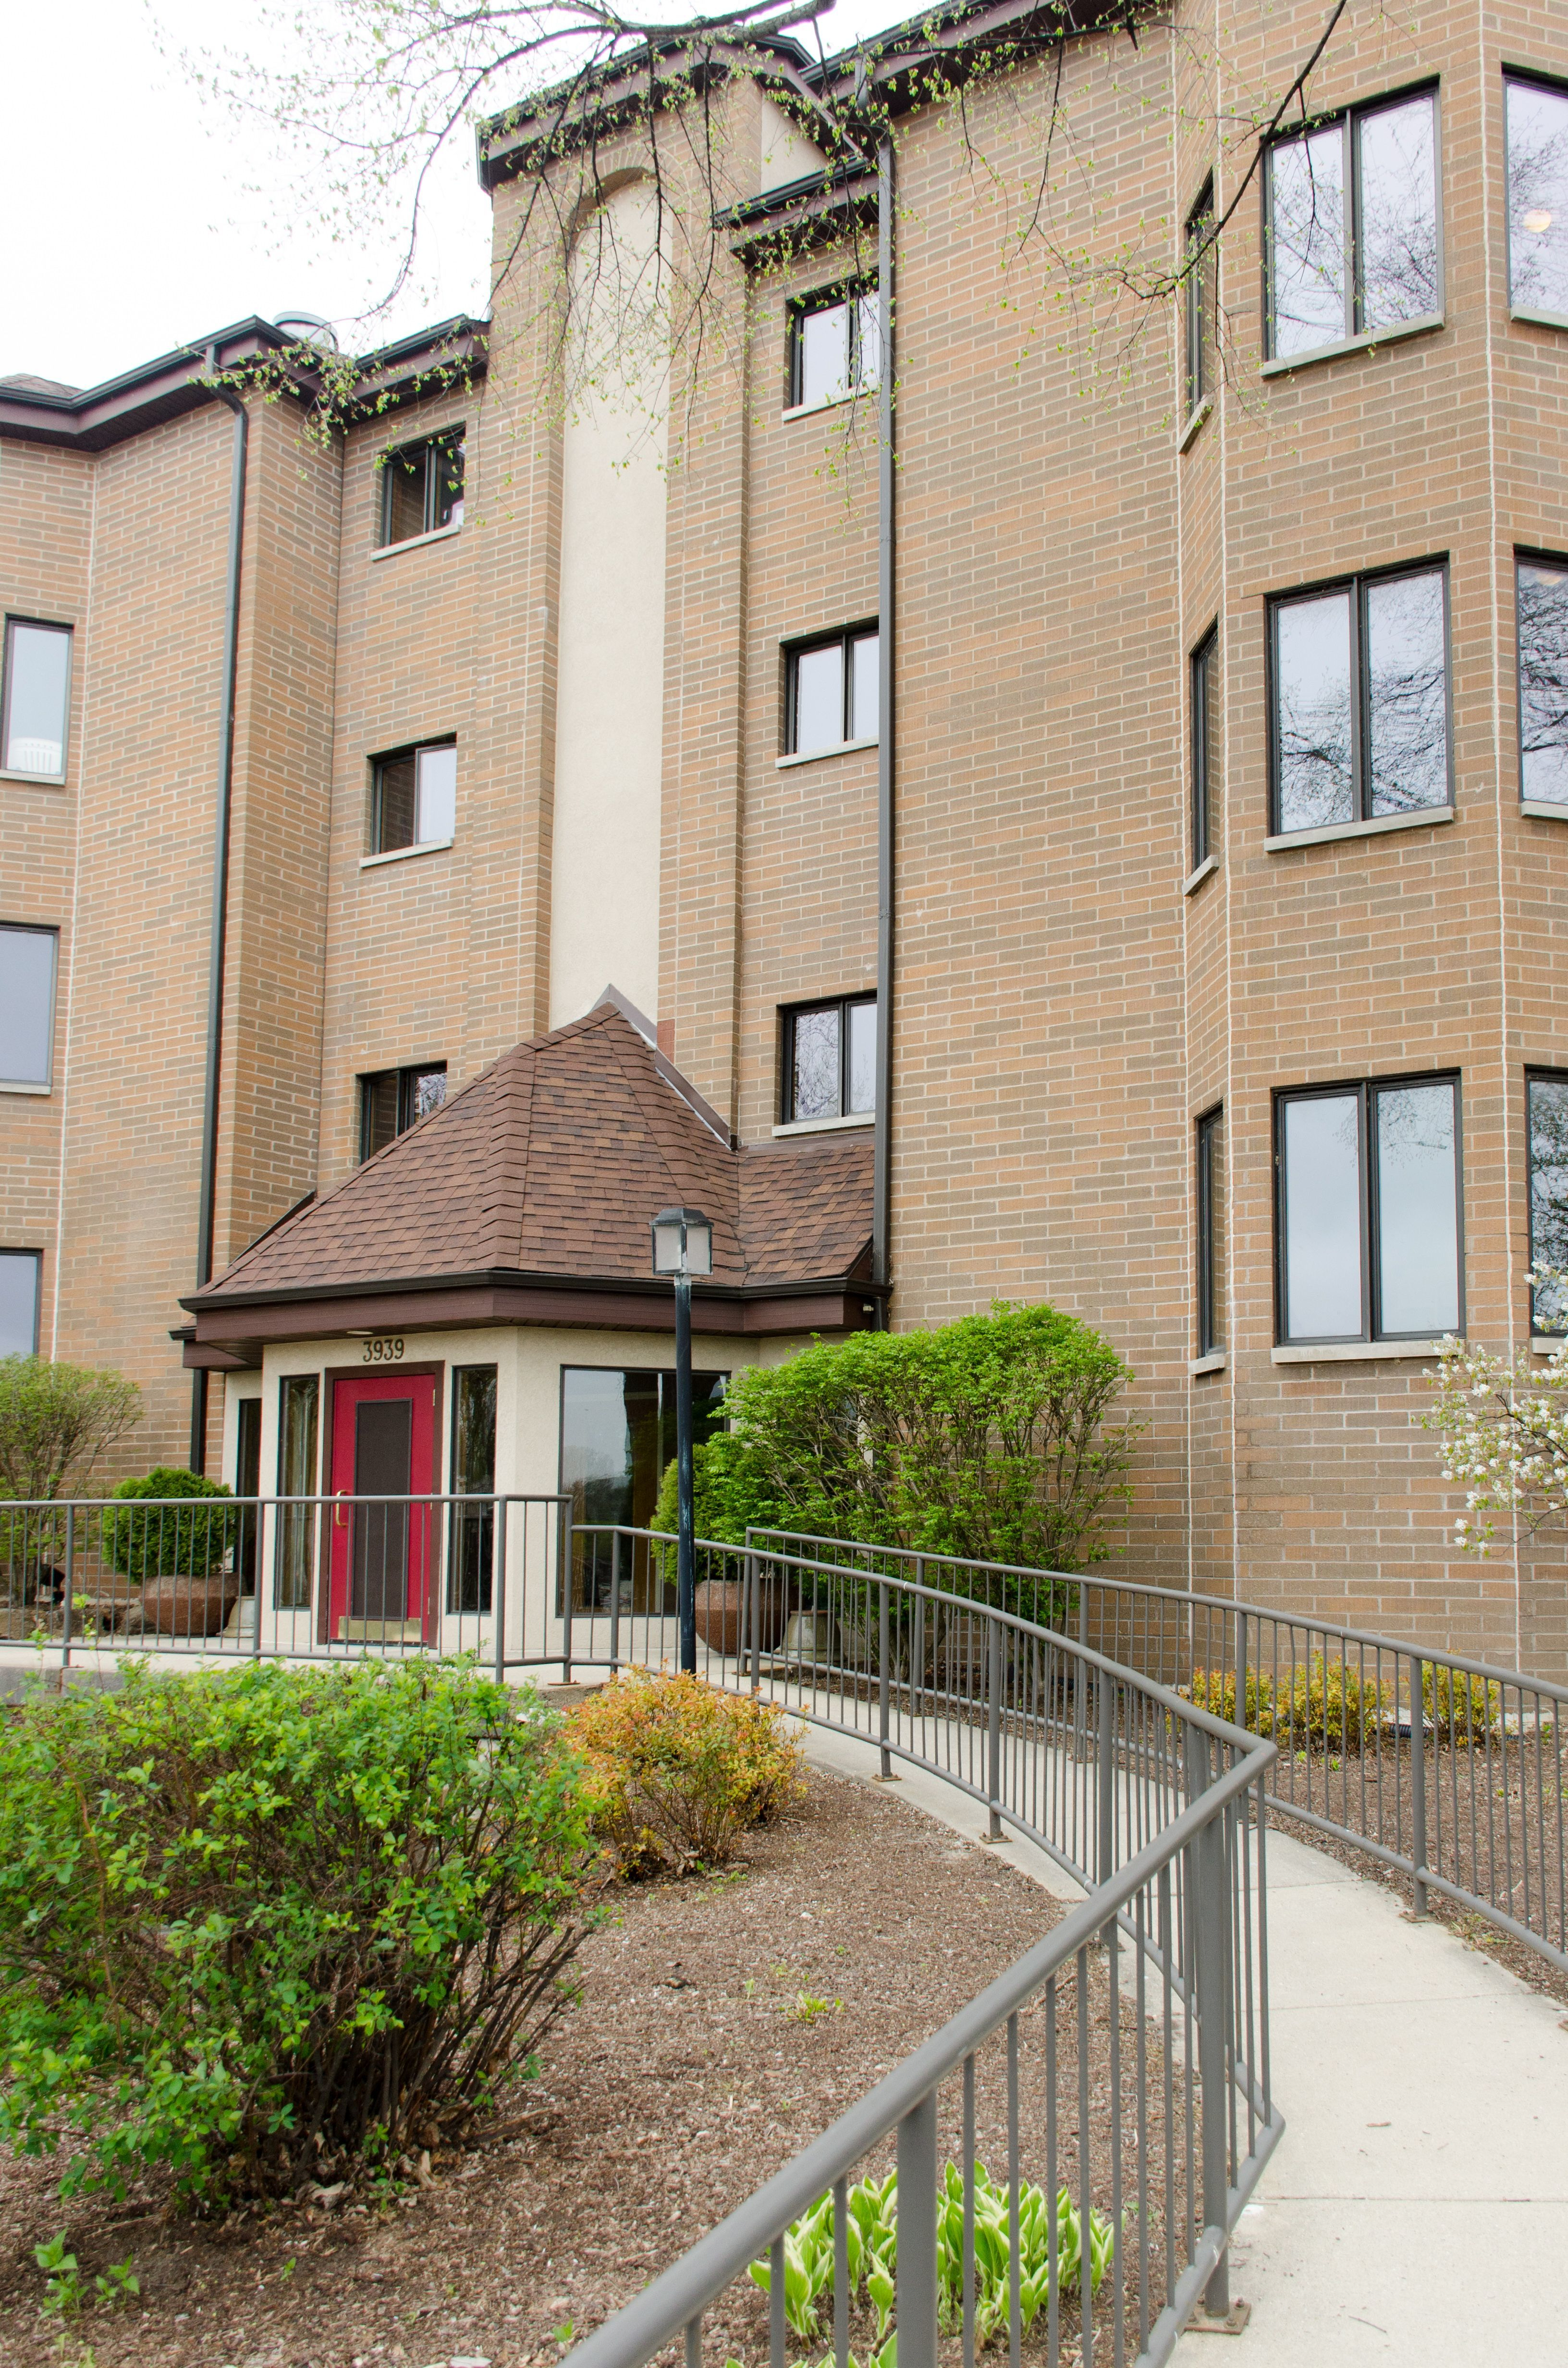 Homes For Sale Middleton Wi >> Water's Edge II - Lake Monona WI Condos for Sale - Lake ...